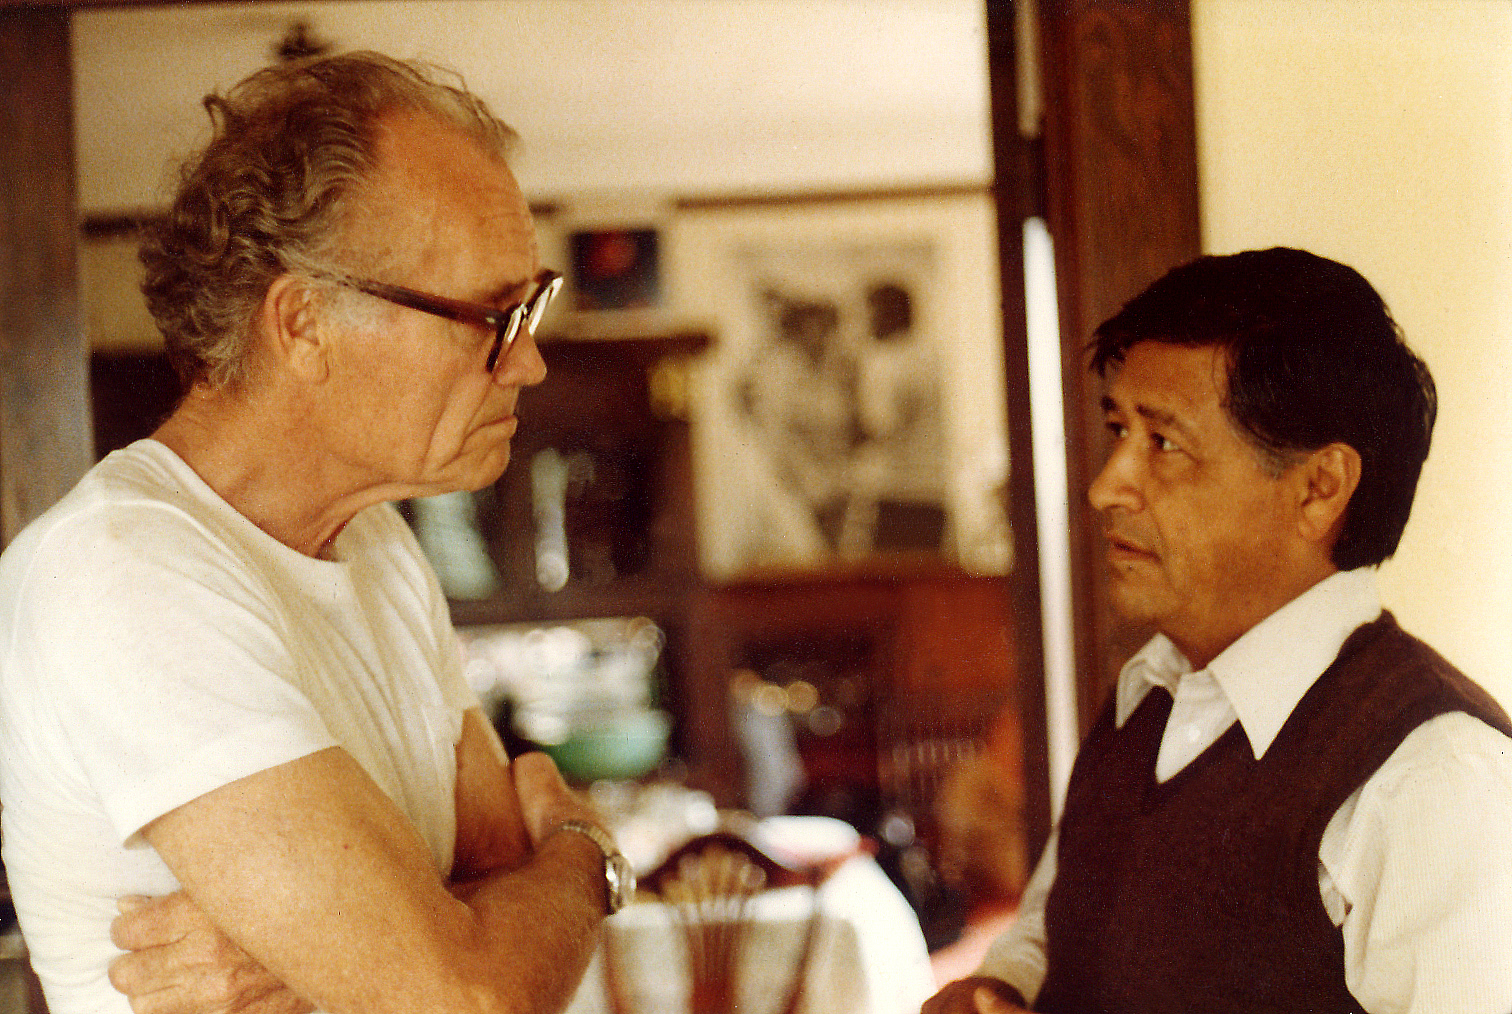 Fred-Ross-Sr.-Cesar-Chavez-on-Grove-Street-in-1979-leading-United-Domestic-Workers-Organizing-Training